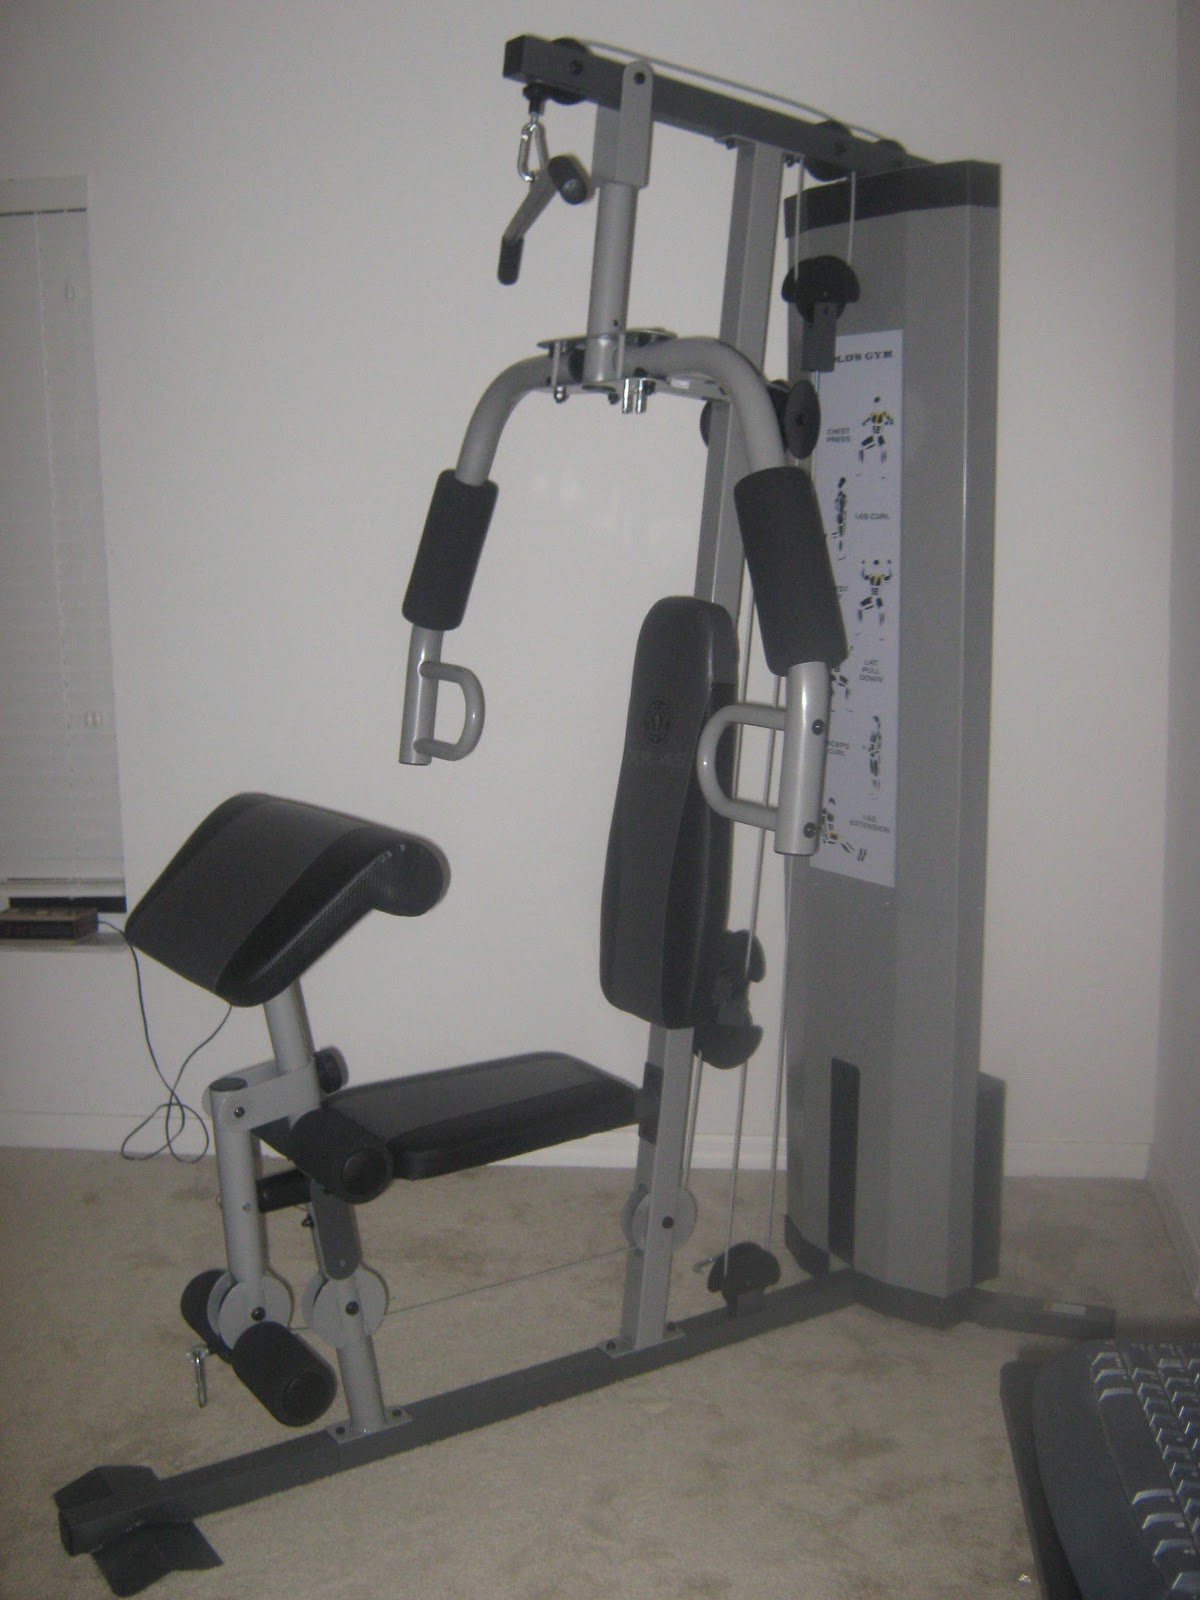 Gold's Gym XR45 Exercises http://www.fitmid-life.com/2011/05/normal-0-so-far-so.html